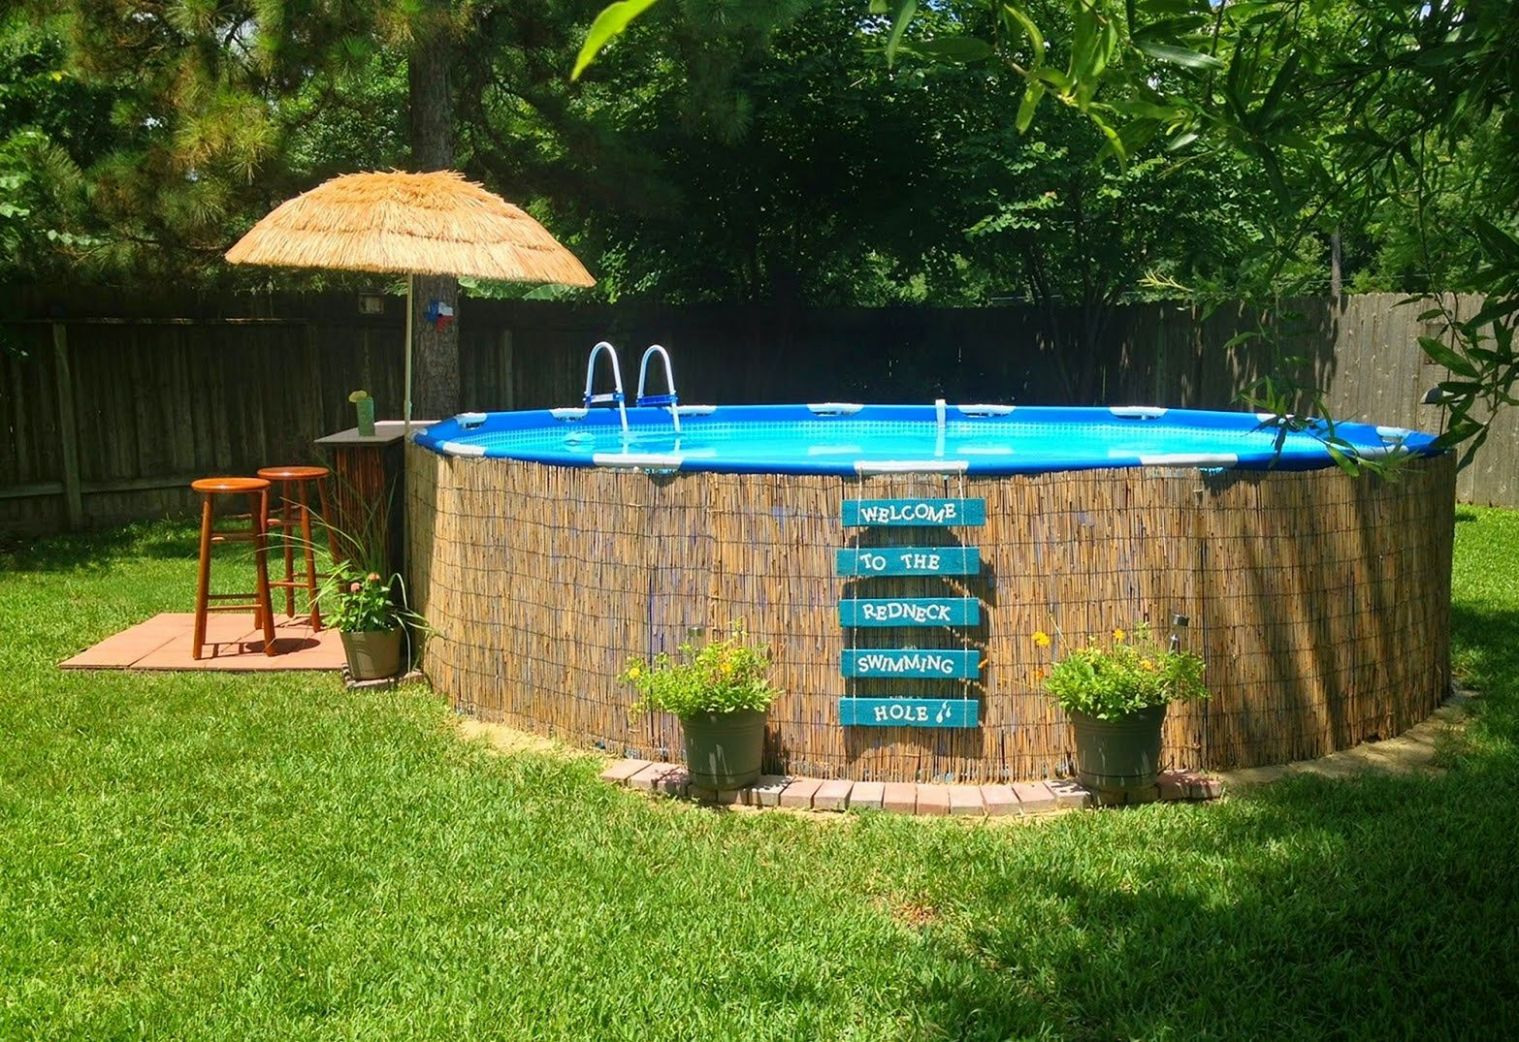 Top 9 Diy Above Ground Pool Ideas On A Budget | Oberirdische ..